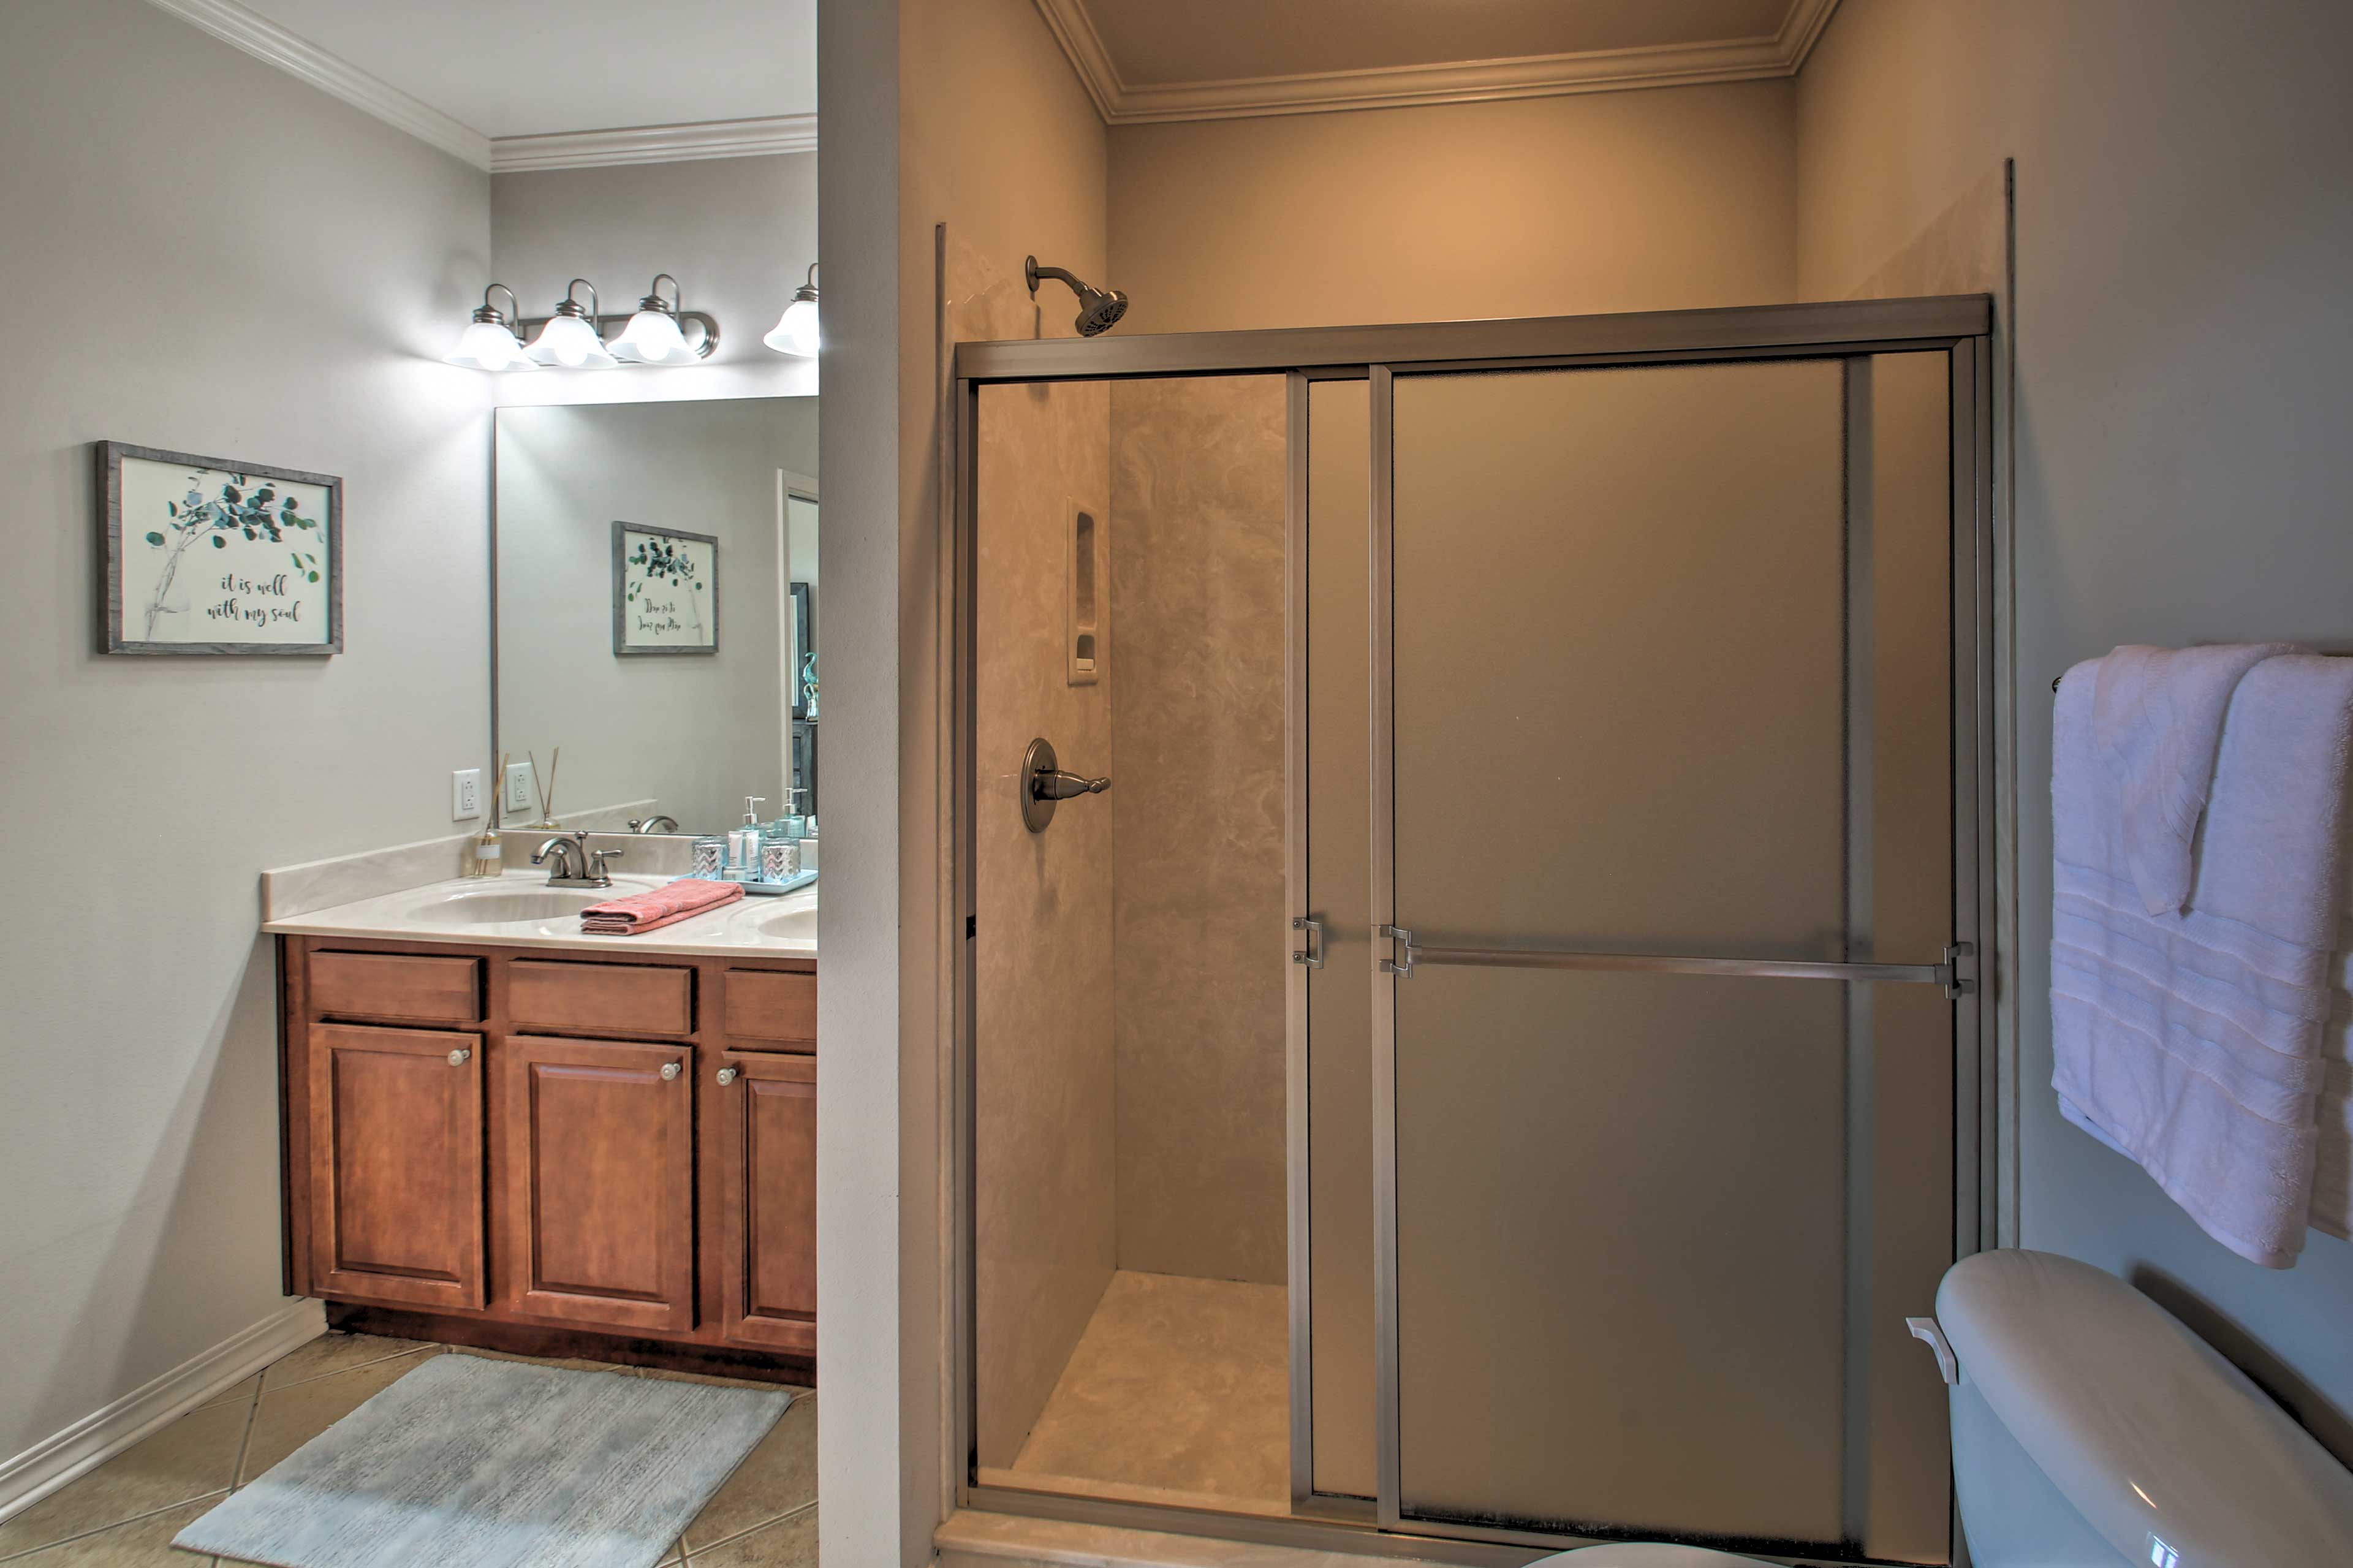 The spacious shower is easy to get in and out of.